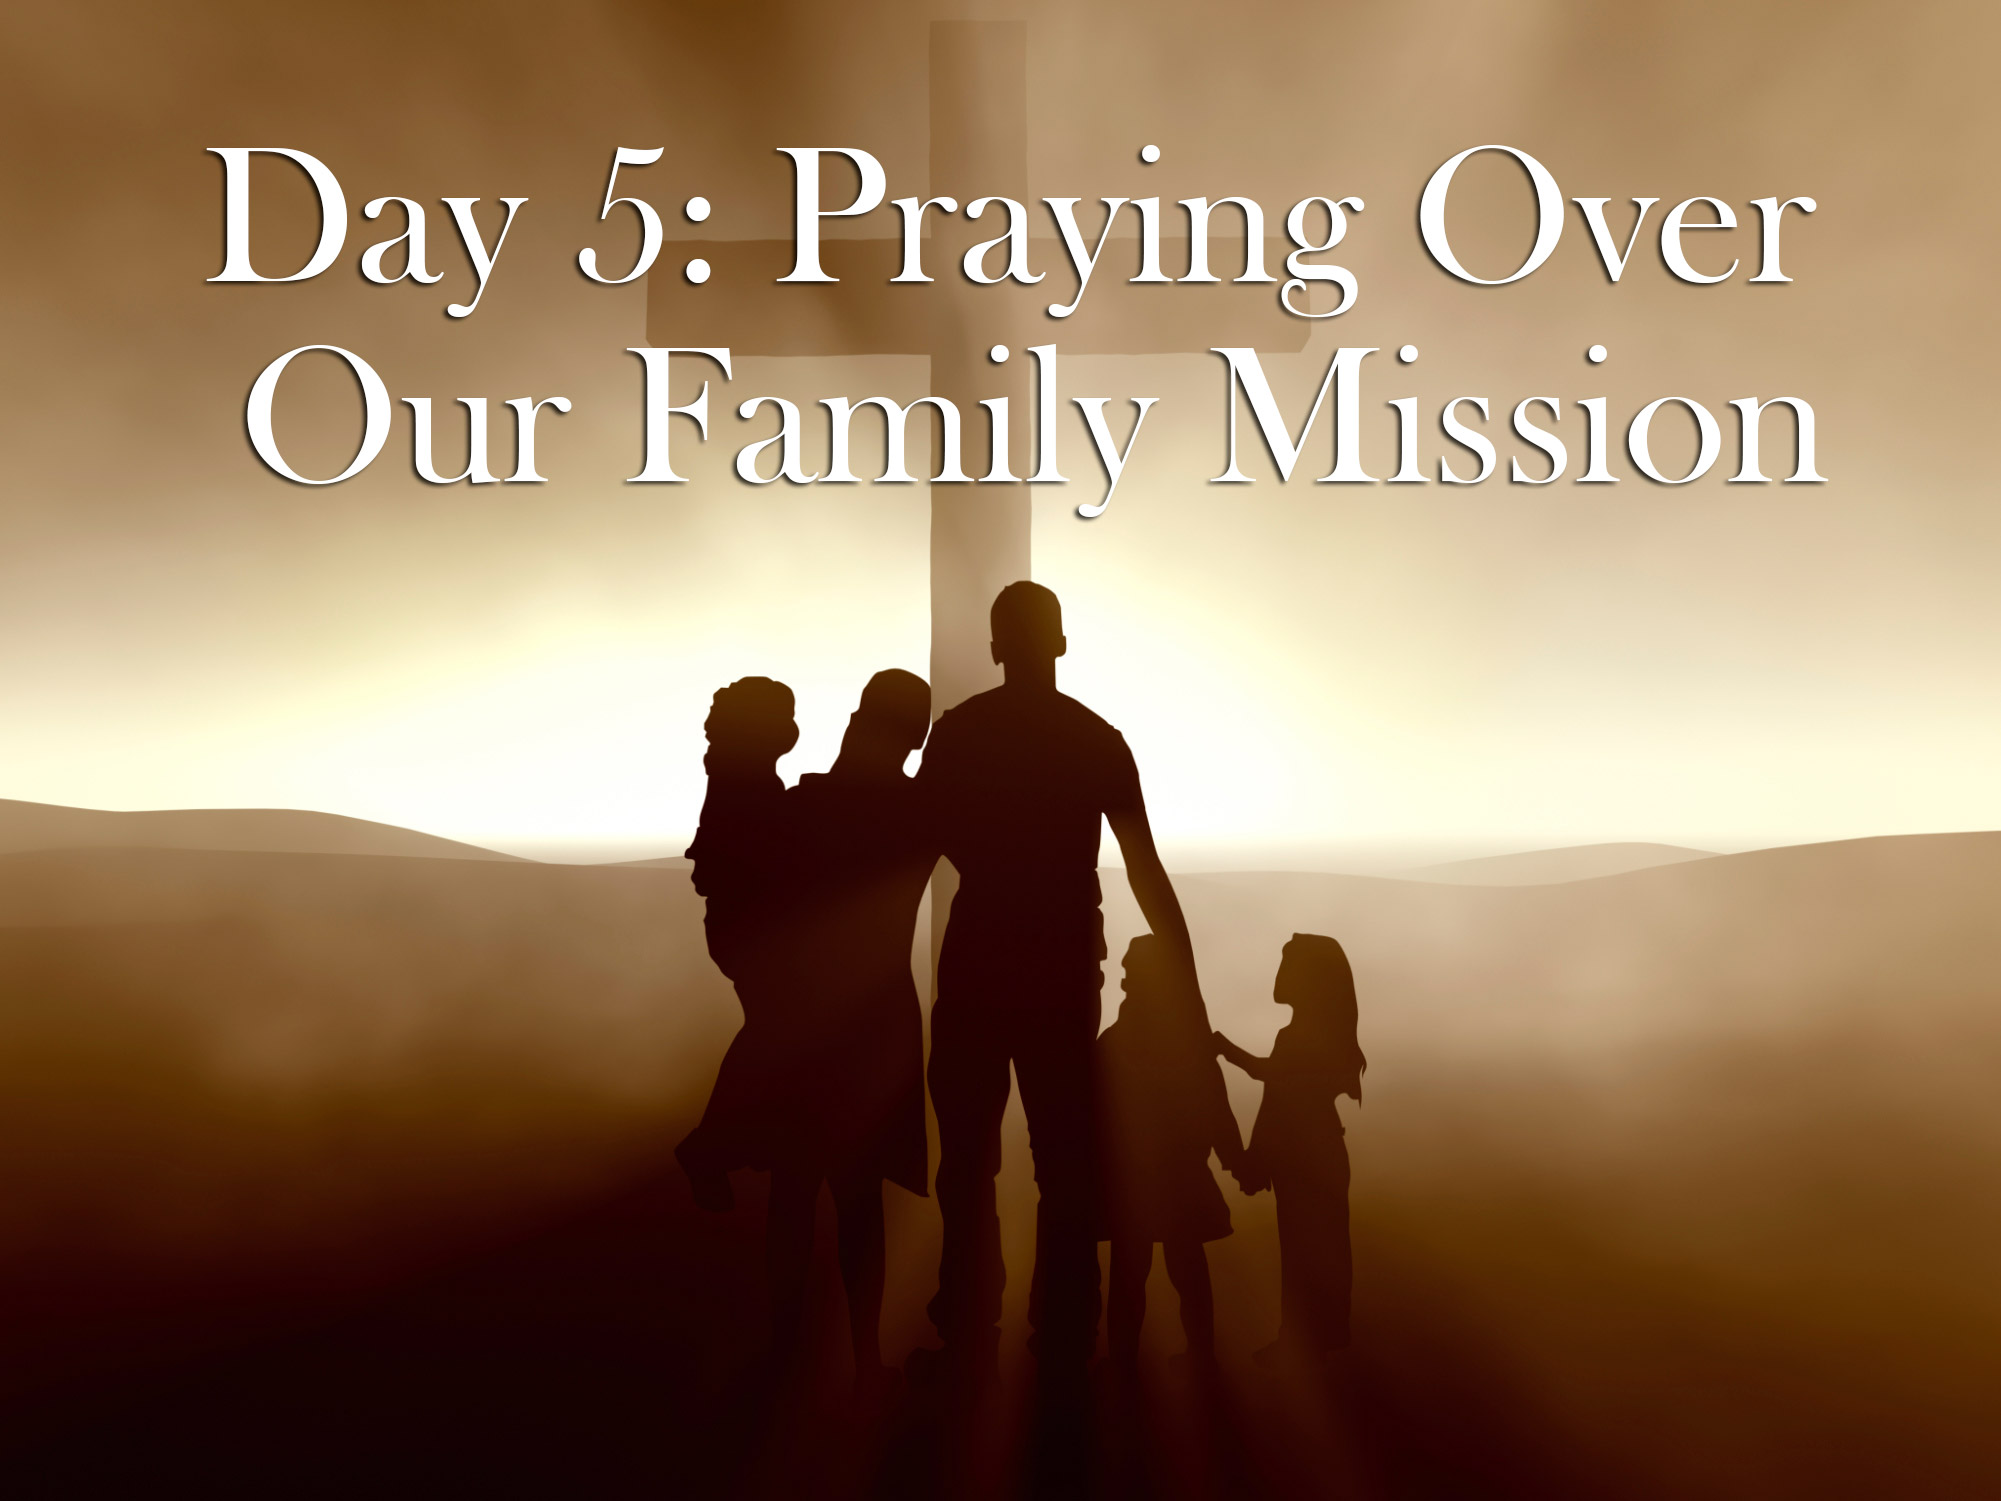 Day 5: Praying Over Our Family Mission